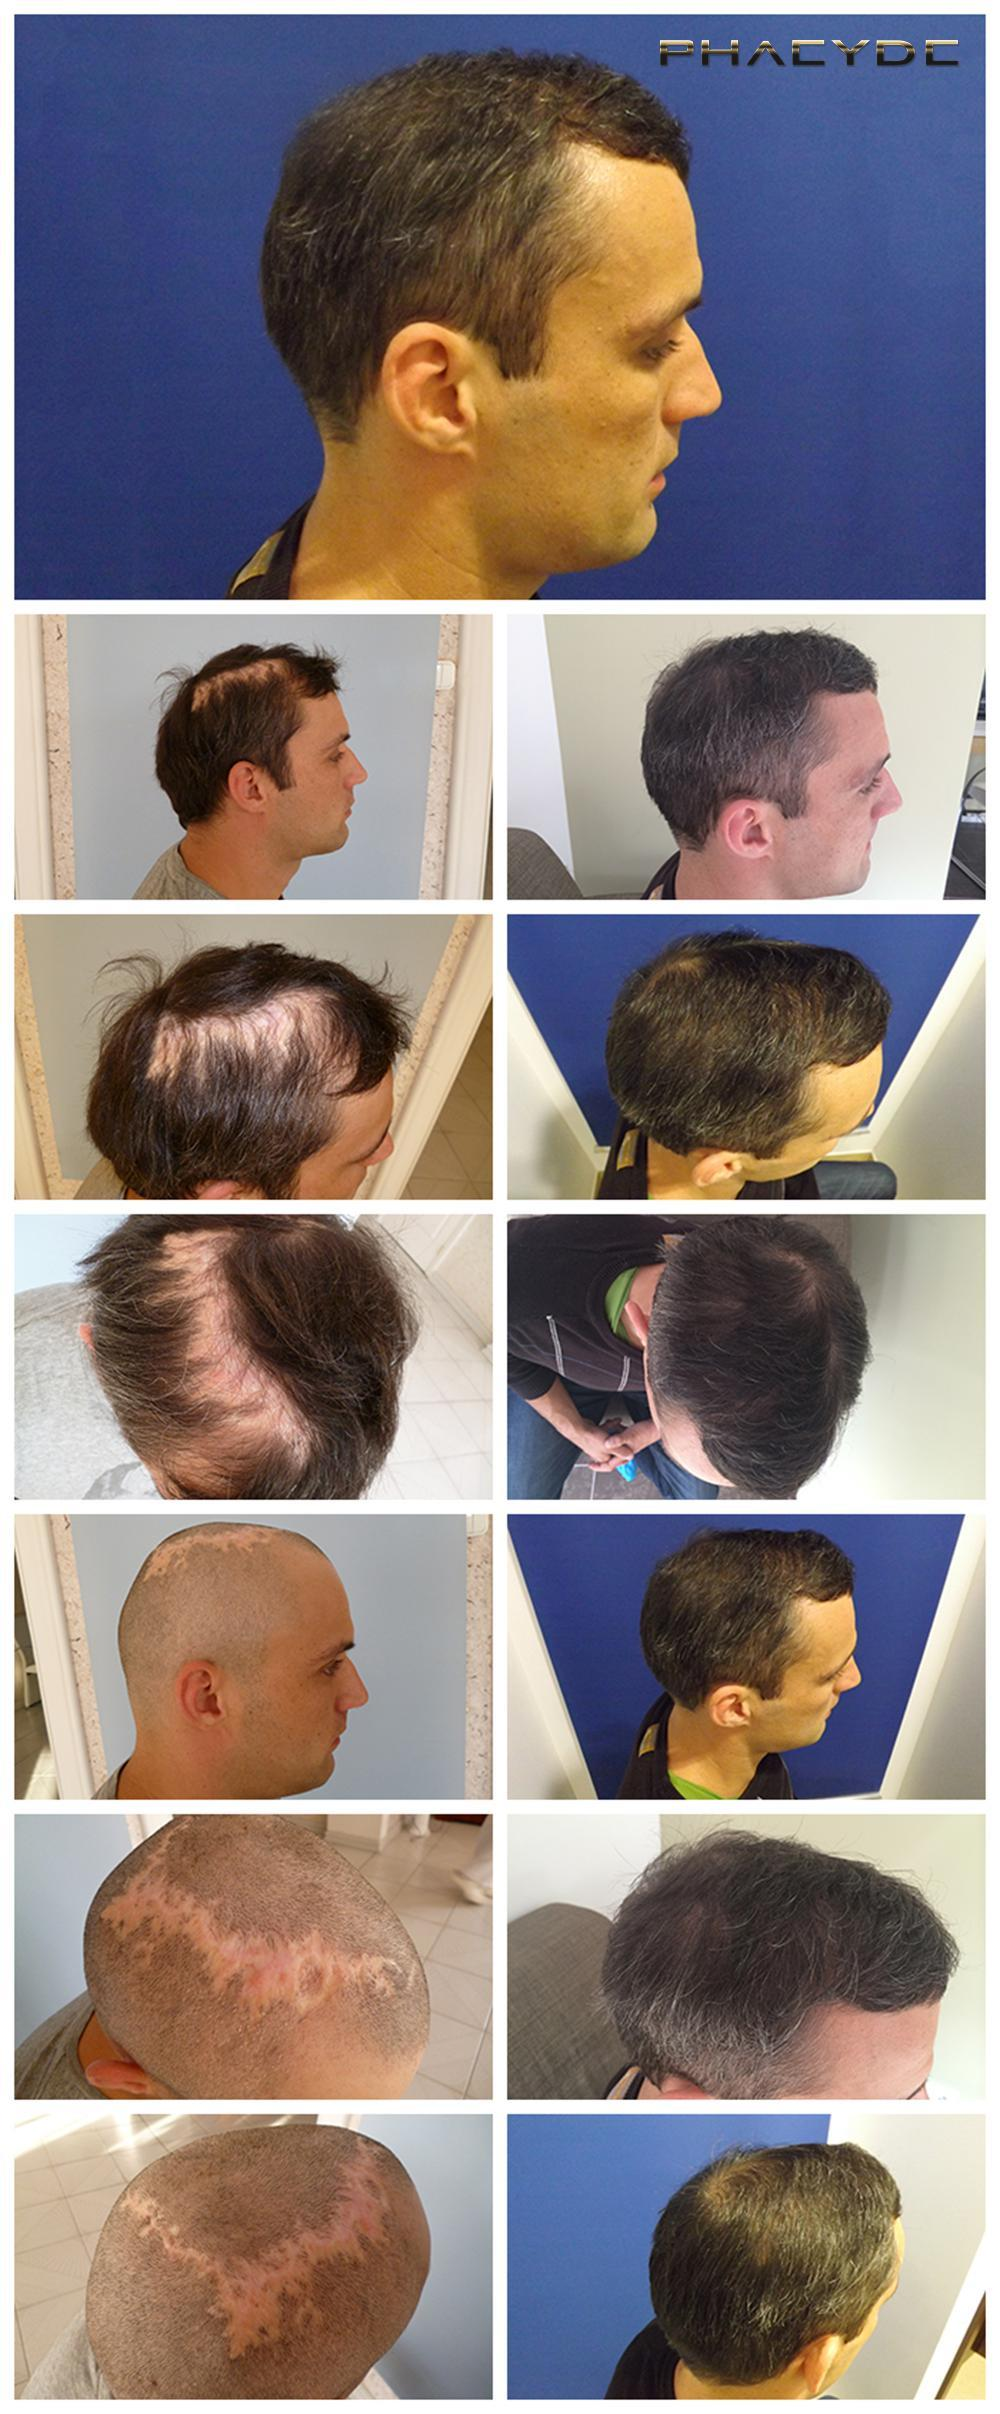 Hair transplant fue results before after photos peter p - PHAEYDE Clinic